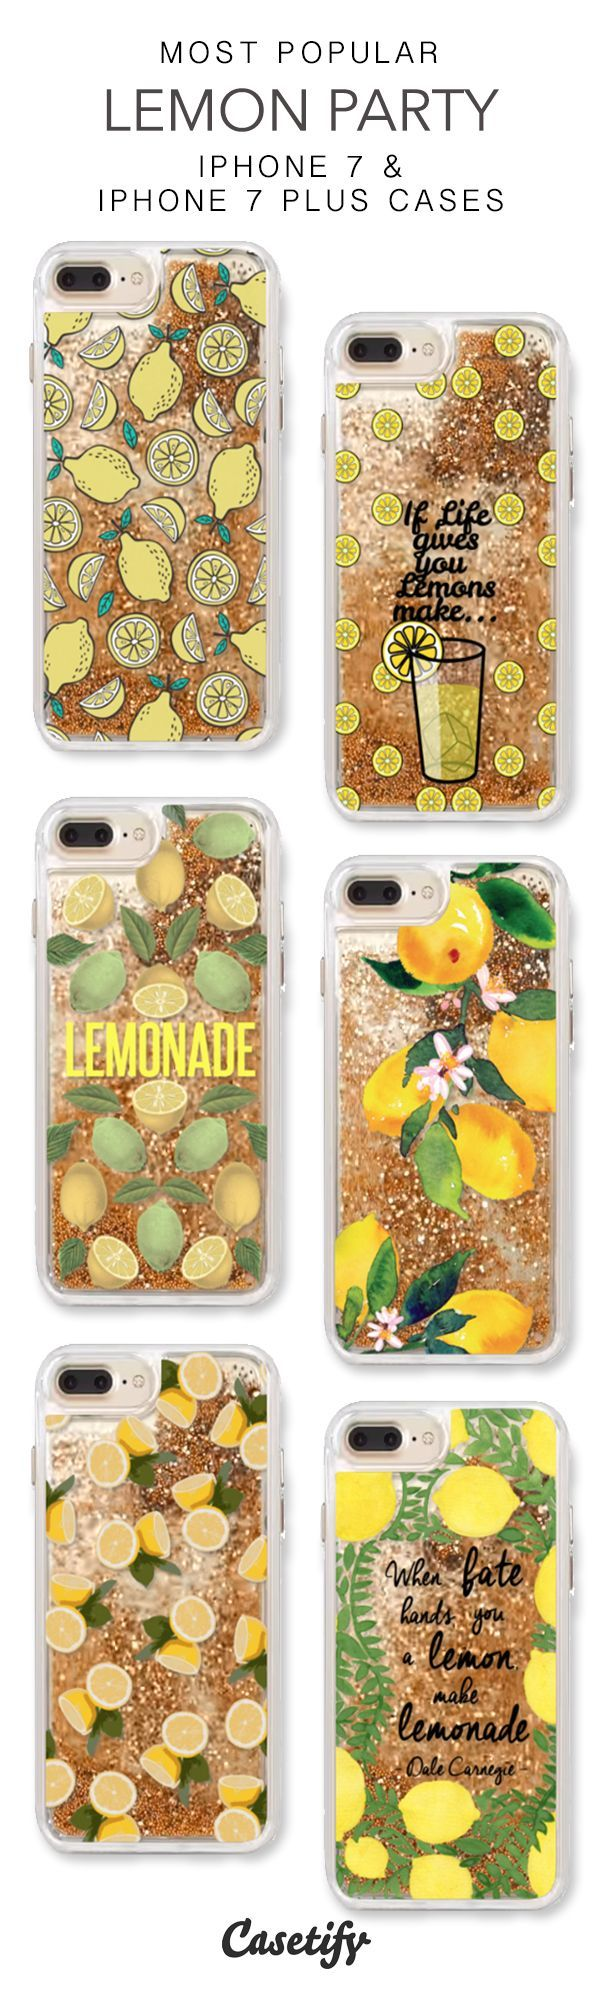 Most Popular Lemon Party iPhone 7 Cases & iPhone 7 Plus Cases. More liquid glitter iPhone case here > https://www.casetify.com/en_US/collections/iphone-7-glitter-cases#/?vc=waSEkxgm58 #iphone7plus,